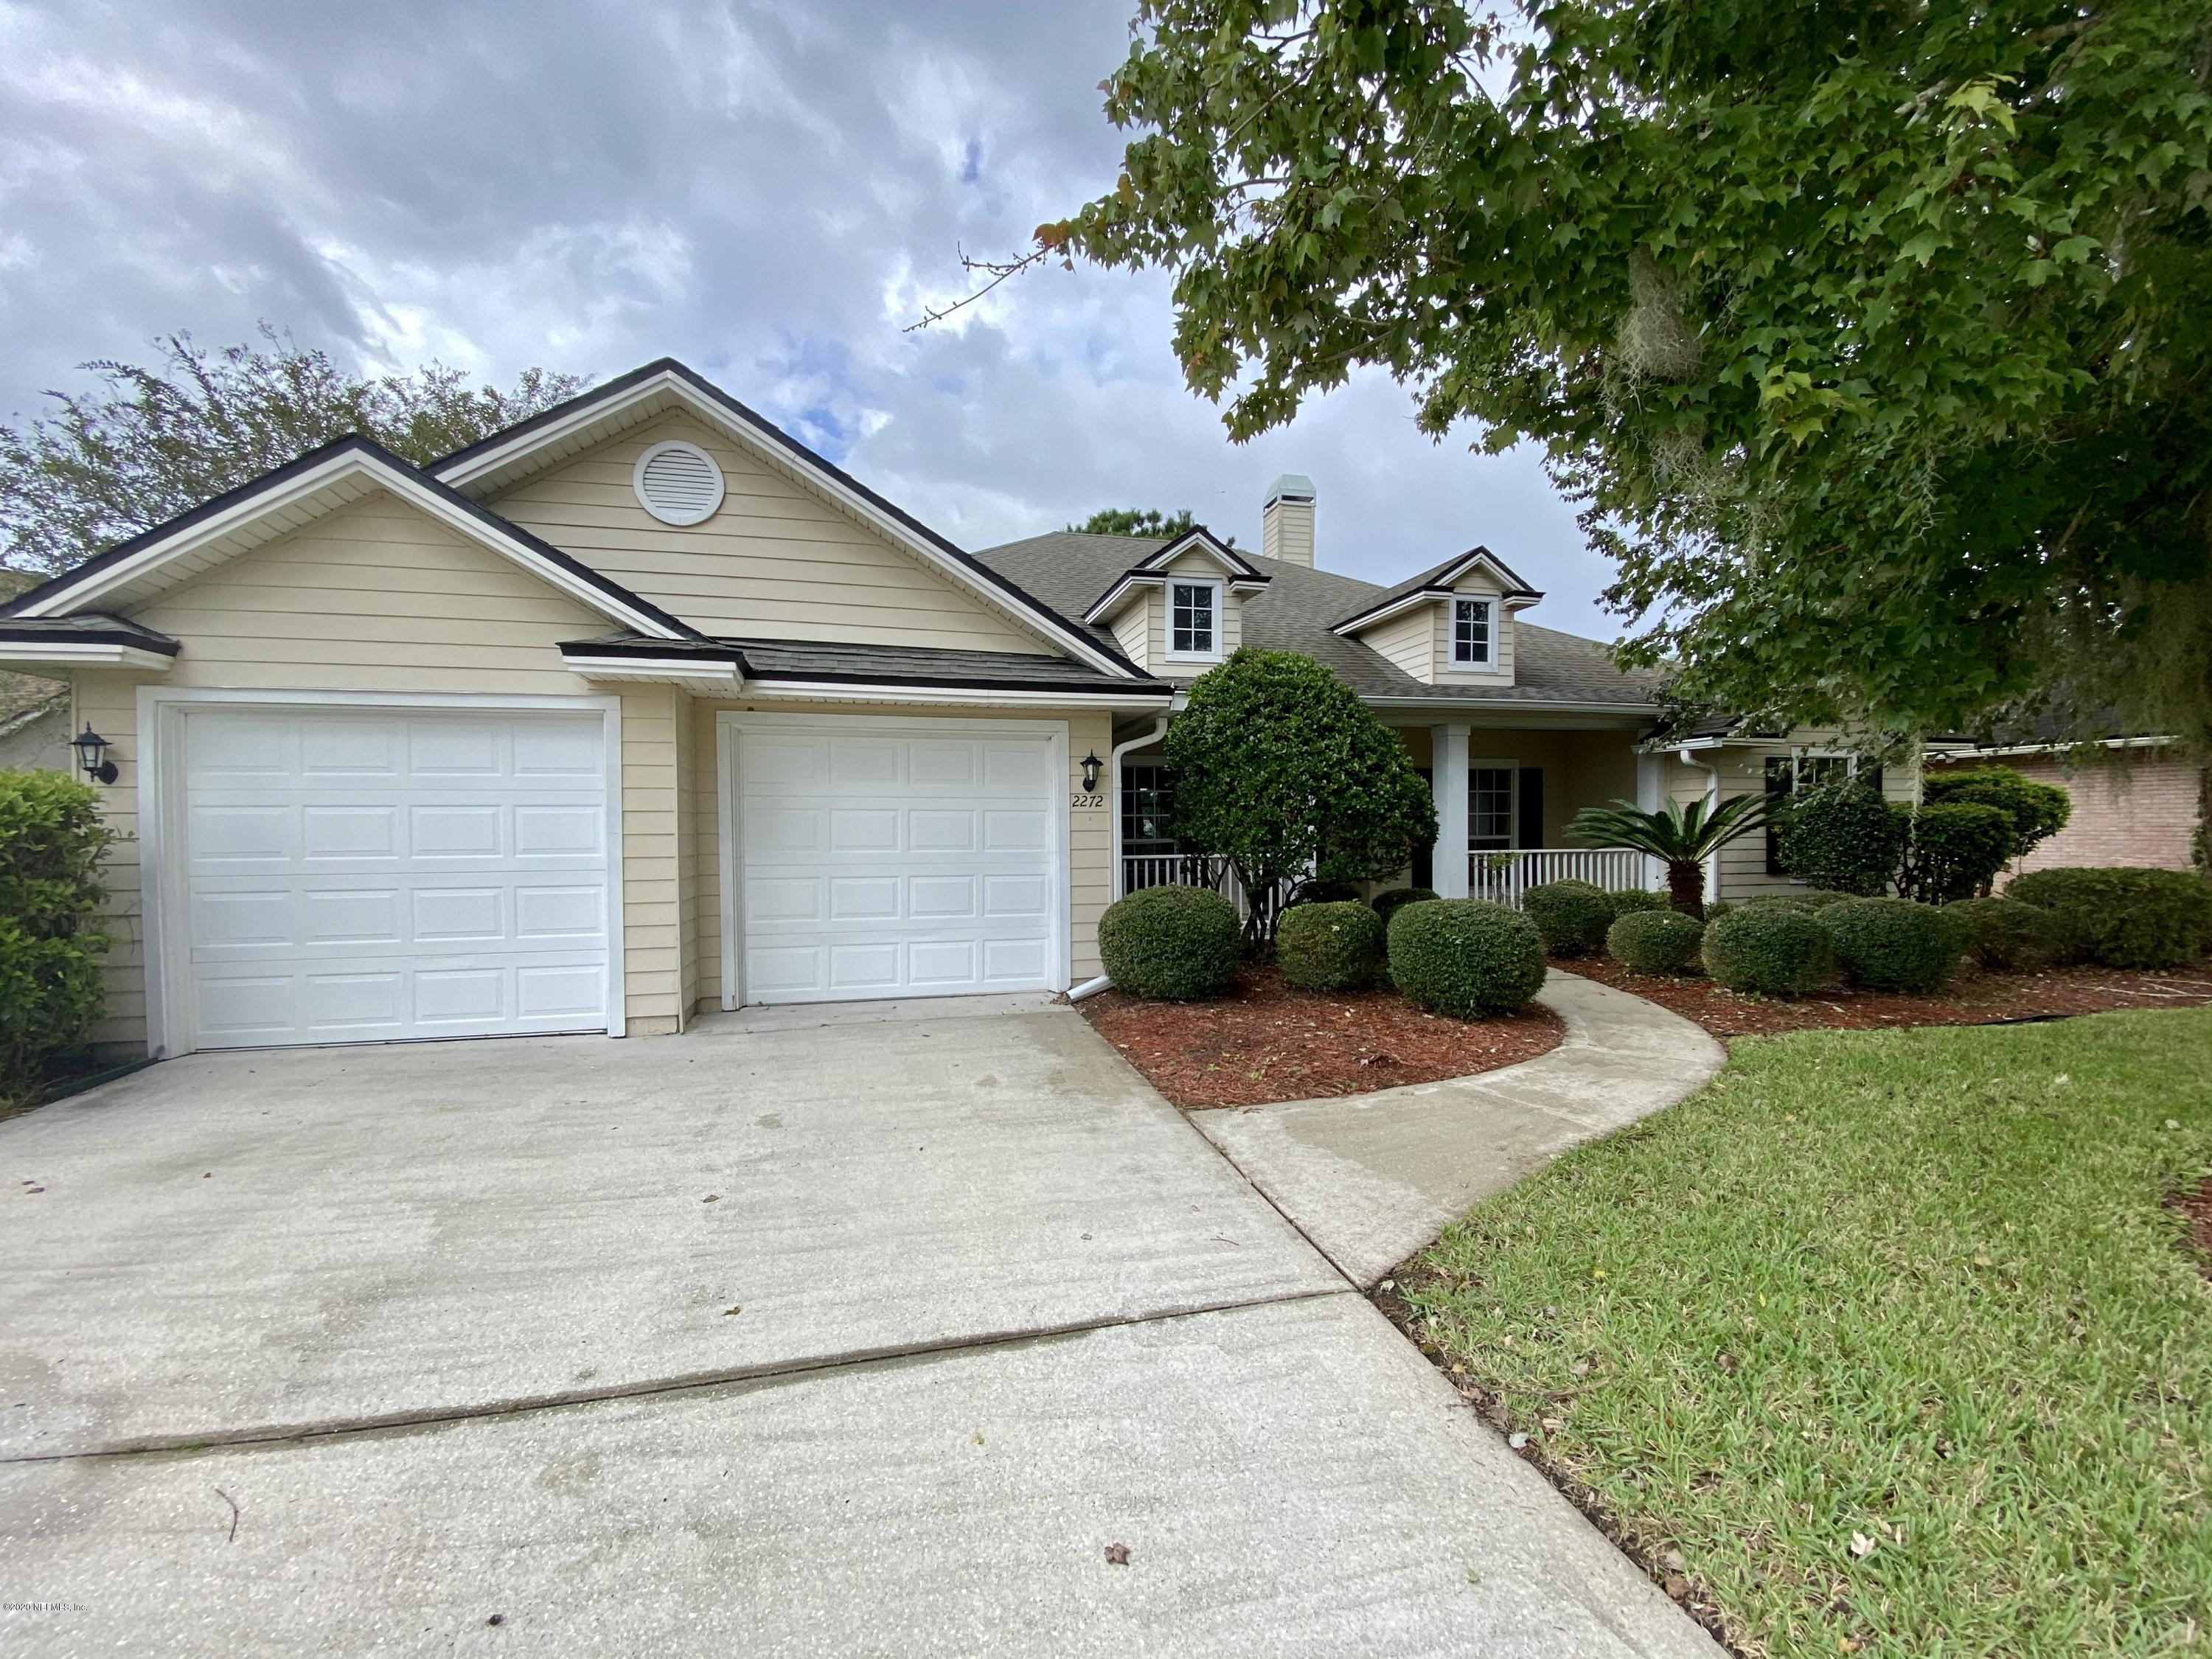 2272 SOUTH BROOK, FLEMING ISLAND, FLORIDA 32003, 5 Bedrooms Bedrooms, ,4 BathroomsBathrooms,Residential,For sale,SOUTH BROOK,1080036